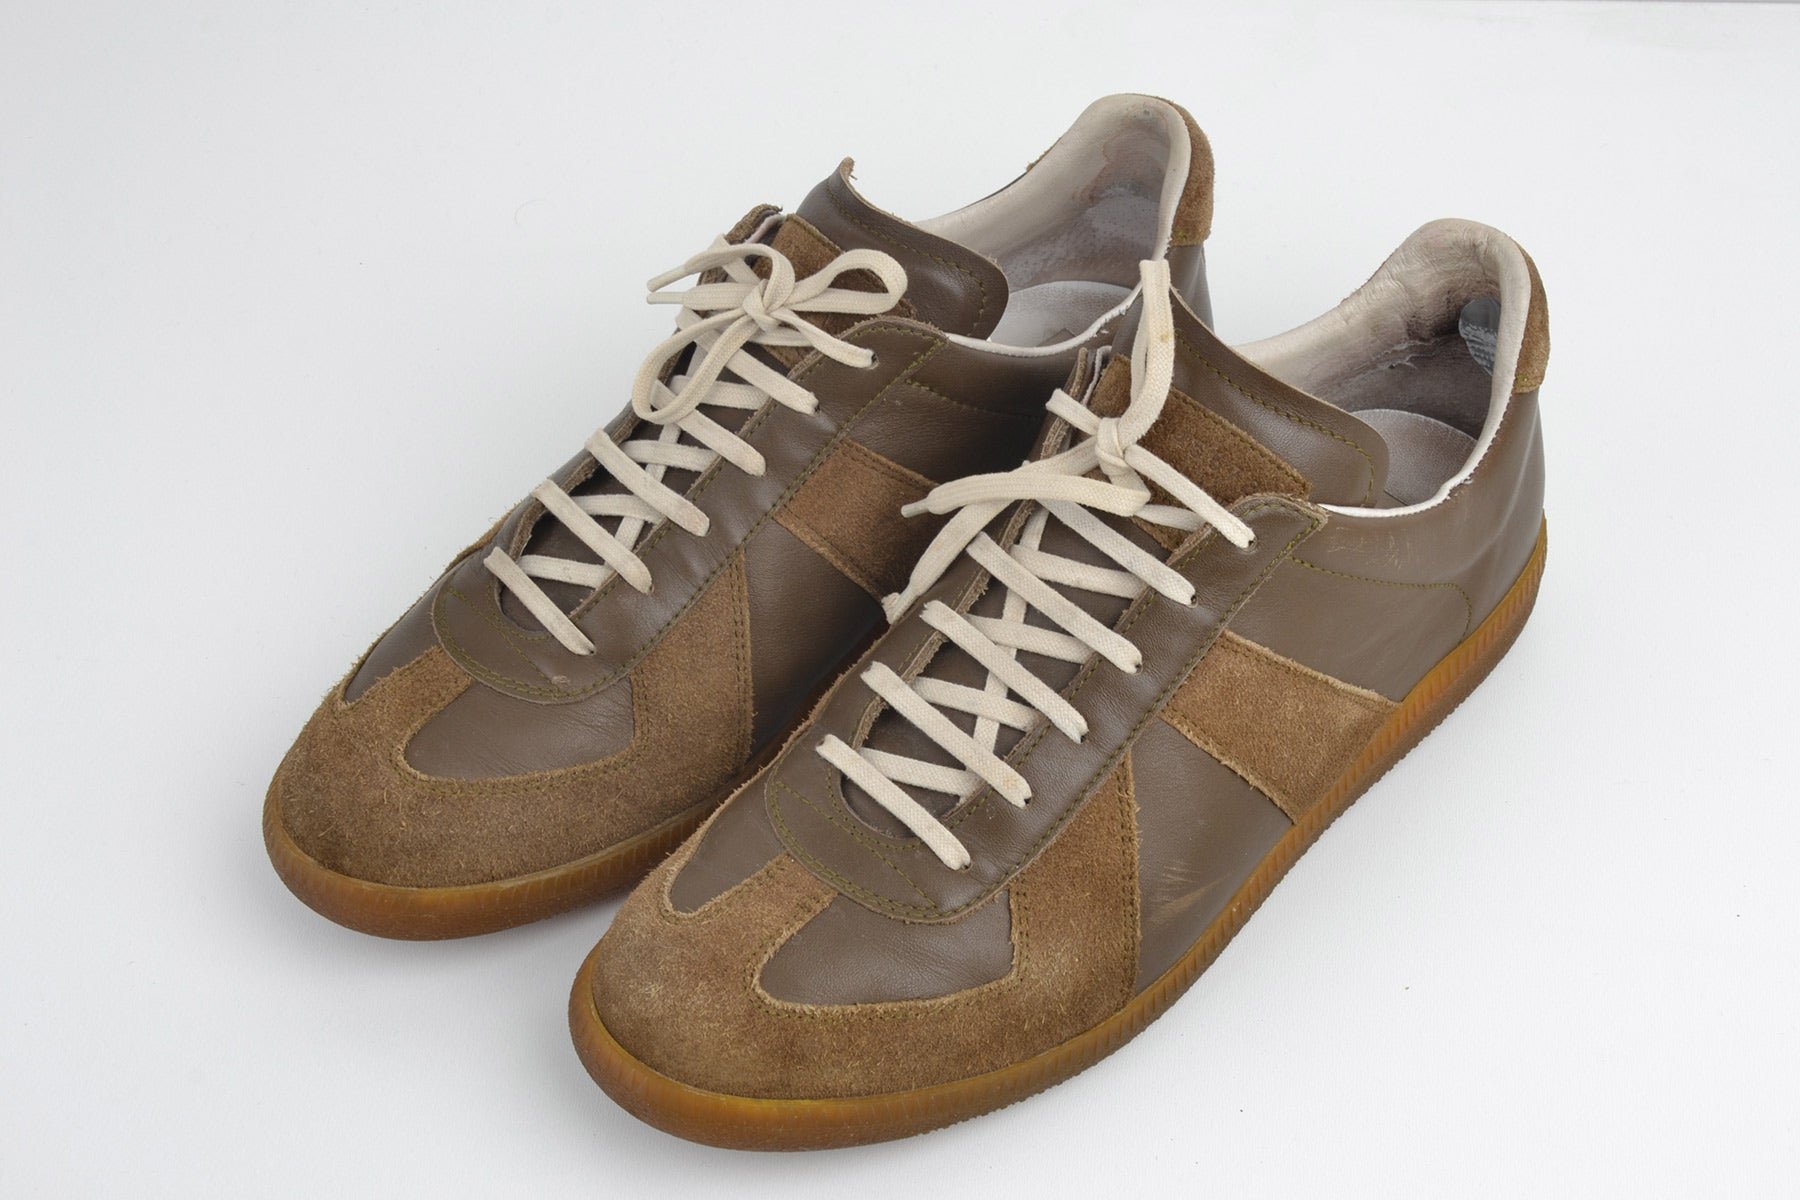 2007 A/W TAN G.A.T. SNEAKERS IN NAPPA AND SUEDE LEATHER